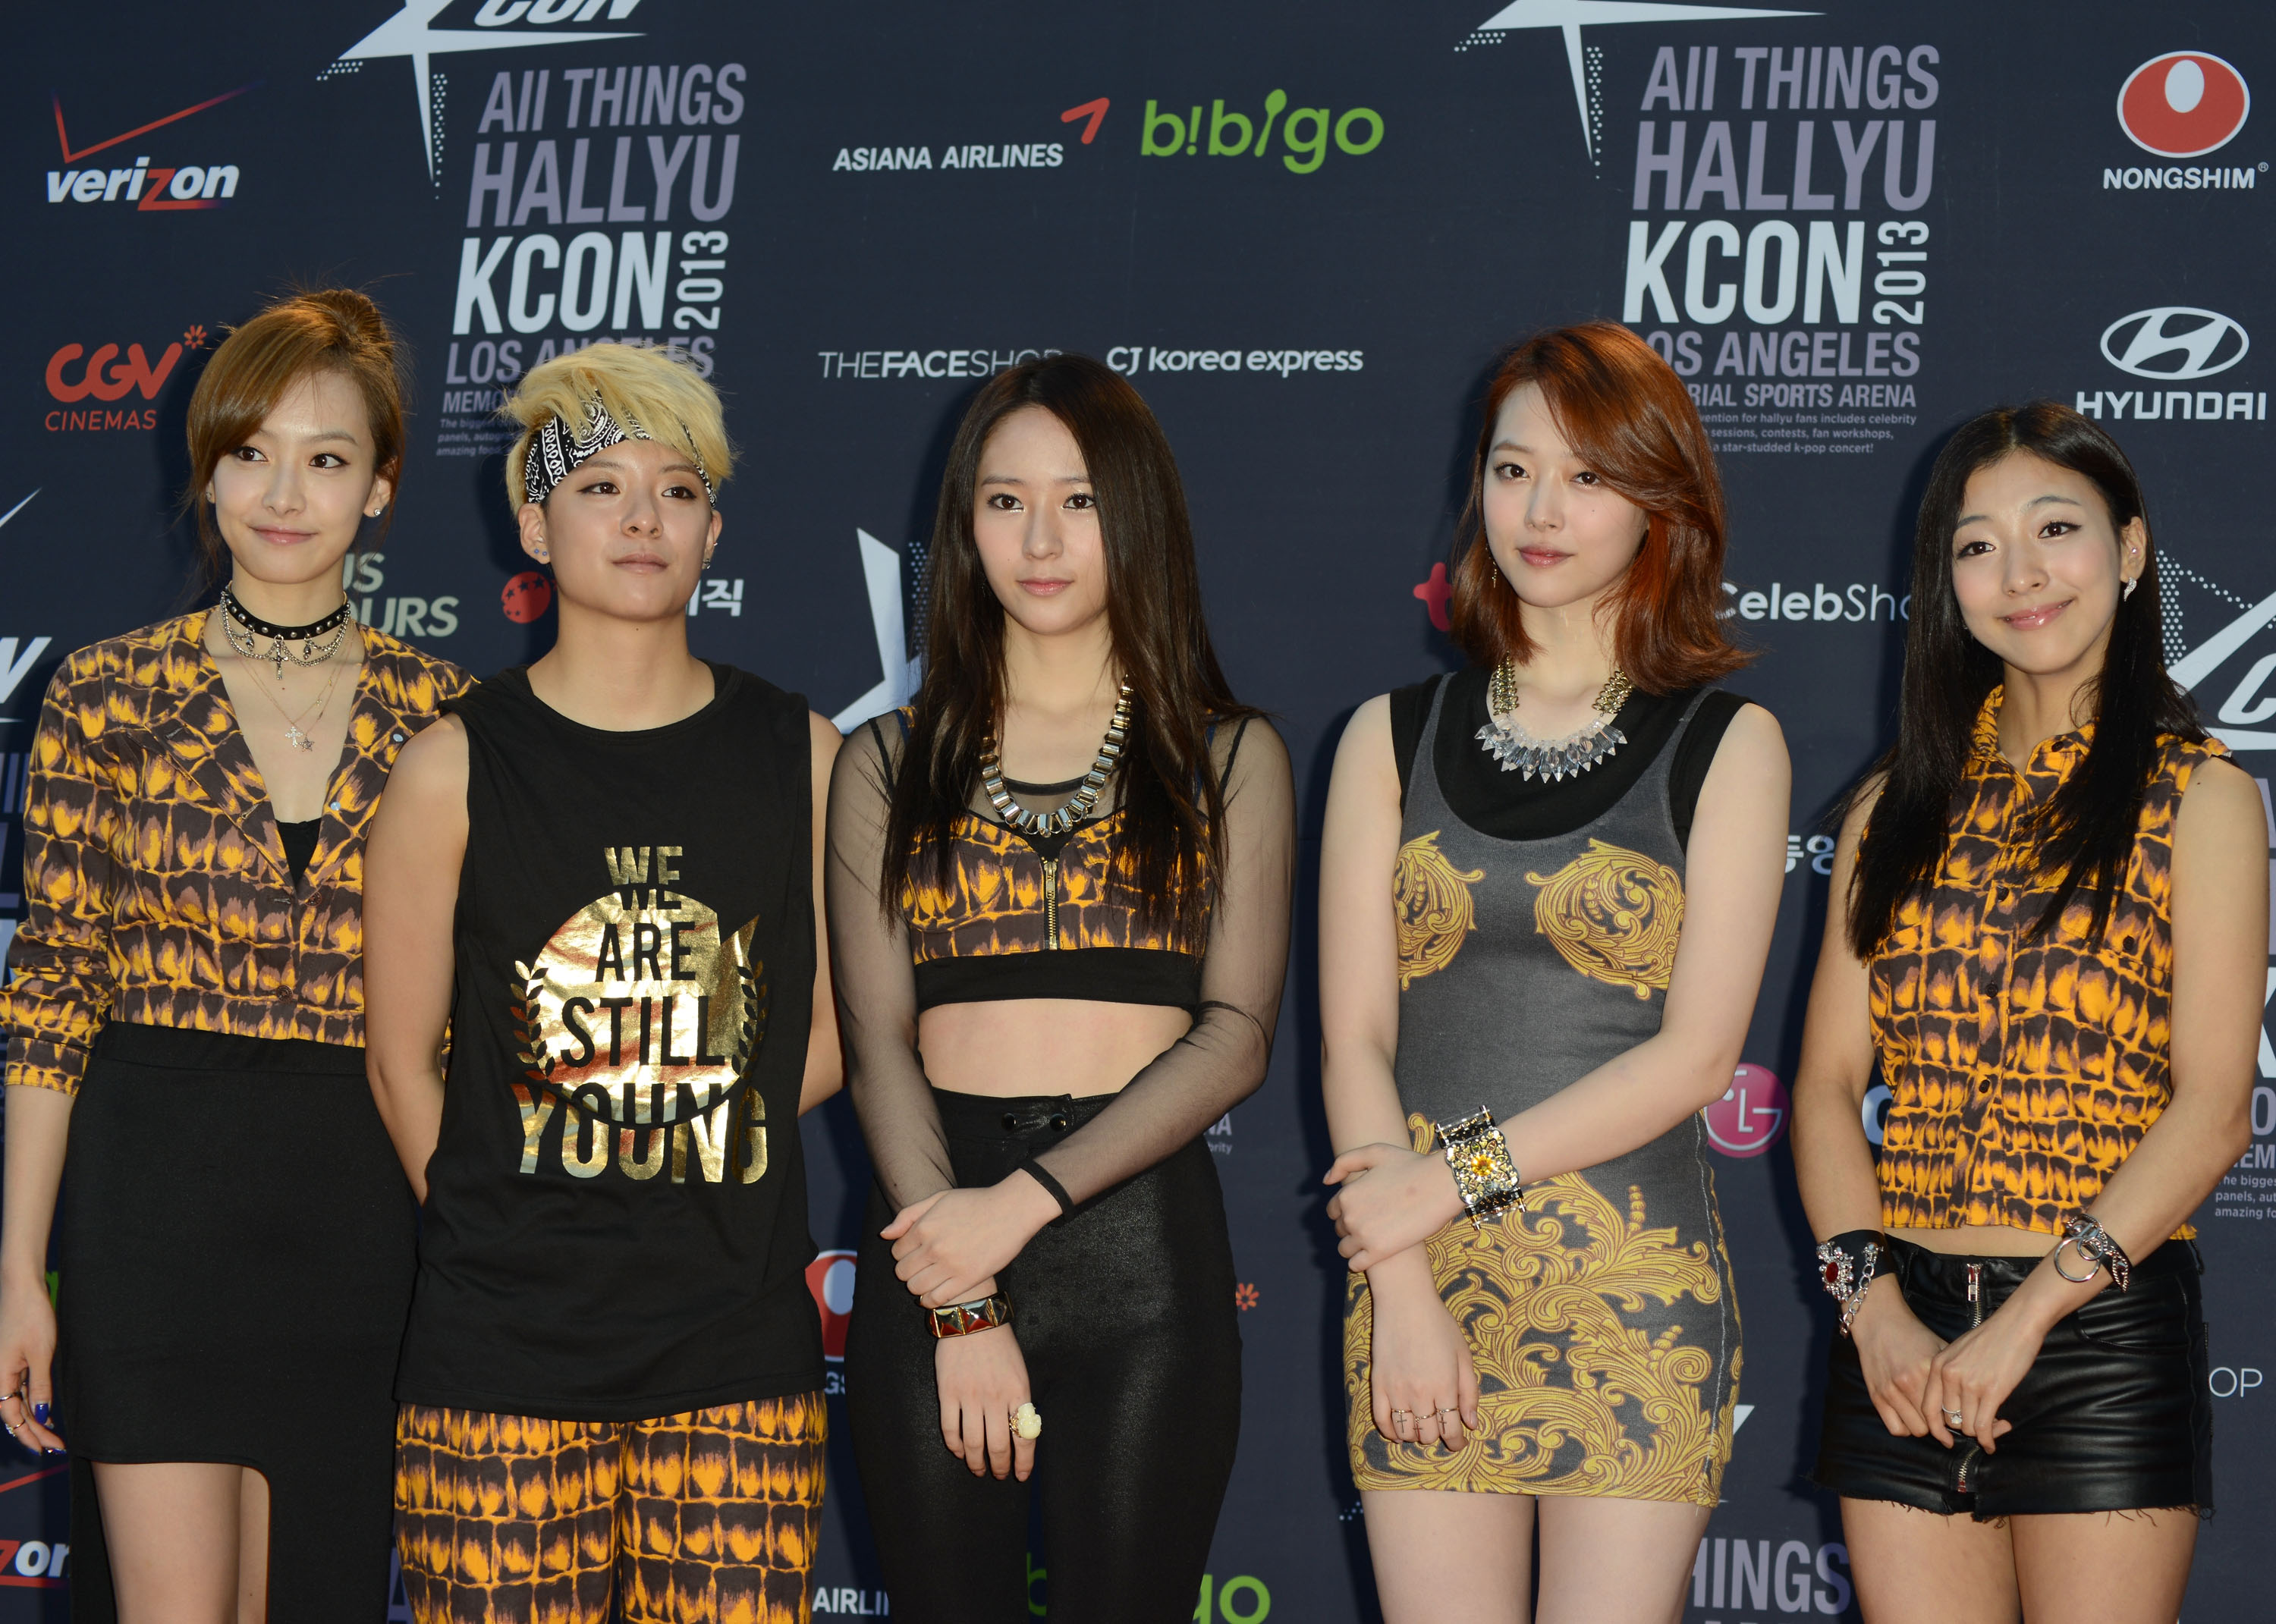 LOS ANGELES, CA - AUGUST 25: (L-R) Victoria Song, Amber Liu, Krystal Jung, Sulli and Luna from girl group F(x) arrive to KCON 2013 convention for K-Pop fans - Day 2 at the Los Angeles Memorial Sports Arena on August 25, 2013 in Los Angeles, California.  (Photo by Keipher McKennie/WireImage)